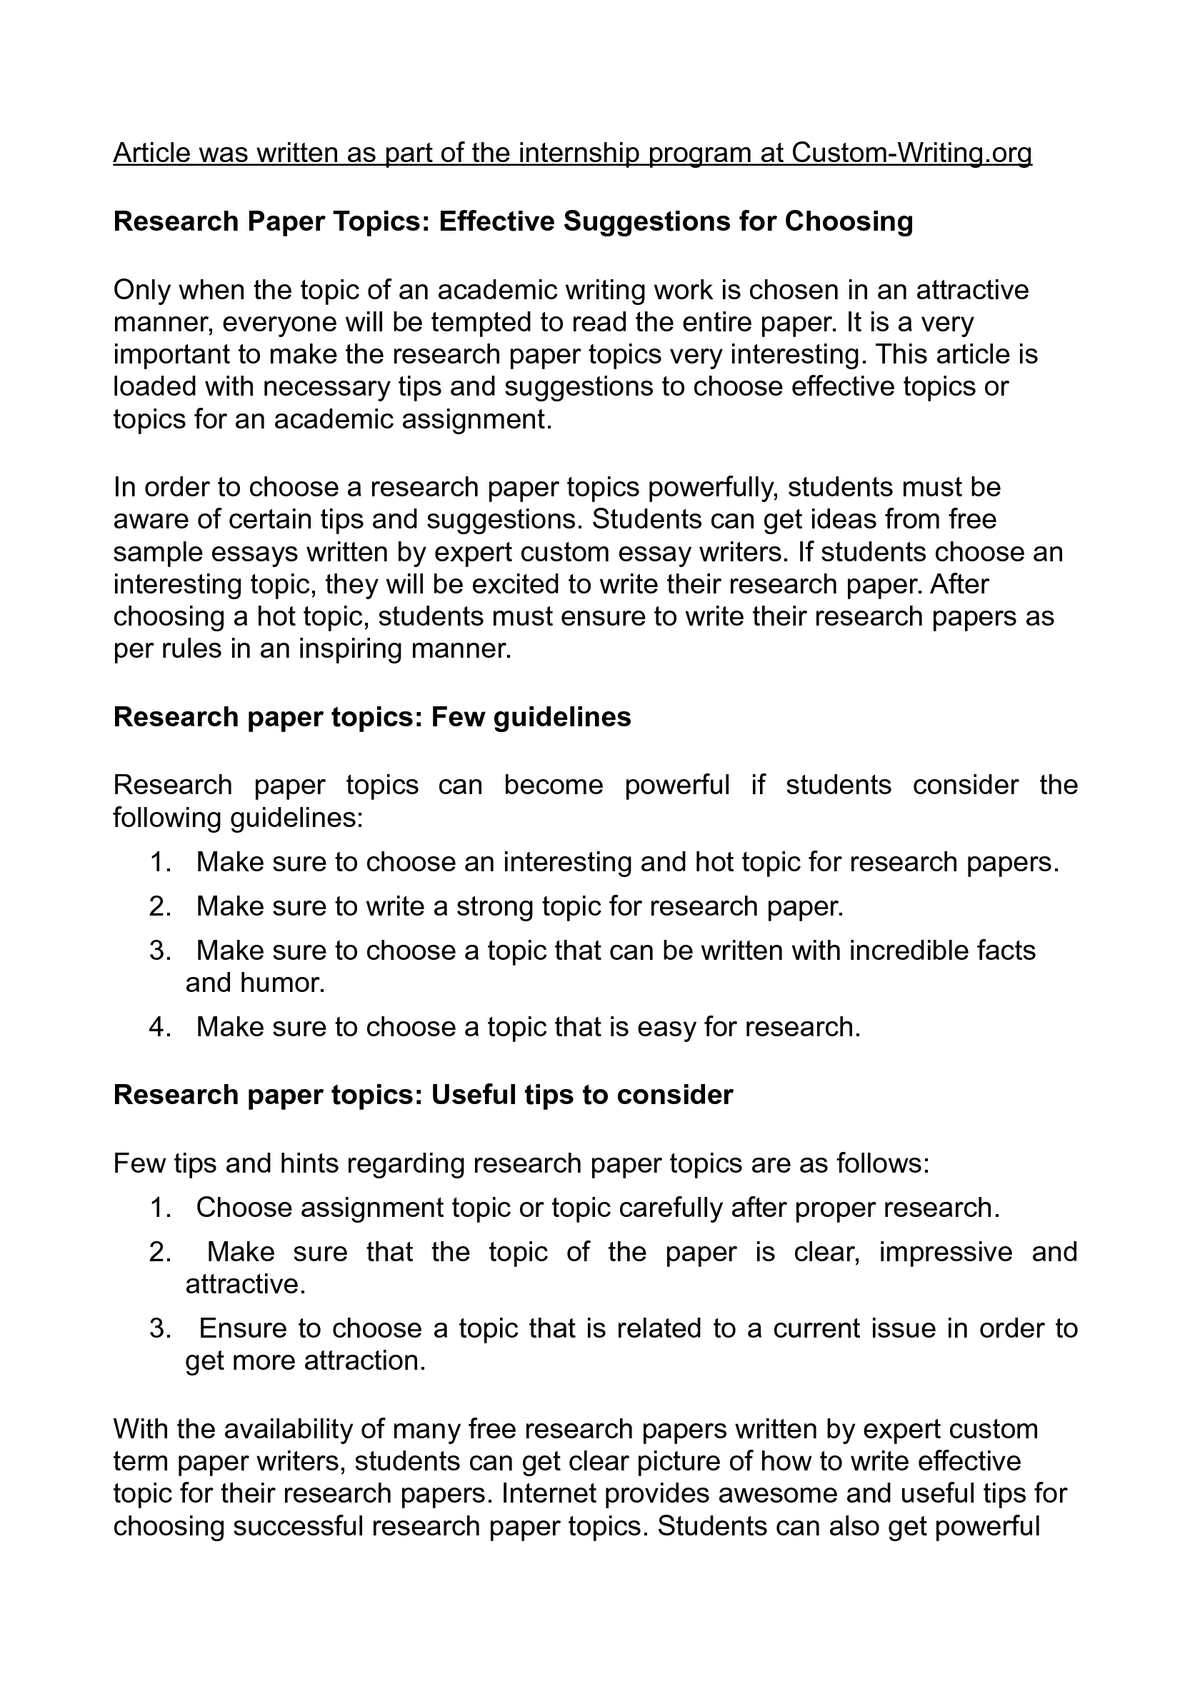 014 Research Paper P1 Topics On Unusual Papers For Related To Education In World History Good Full